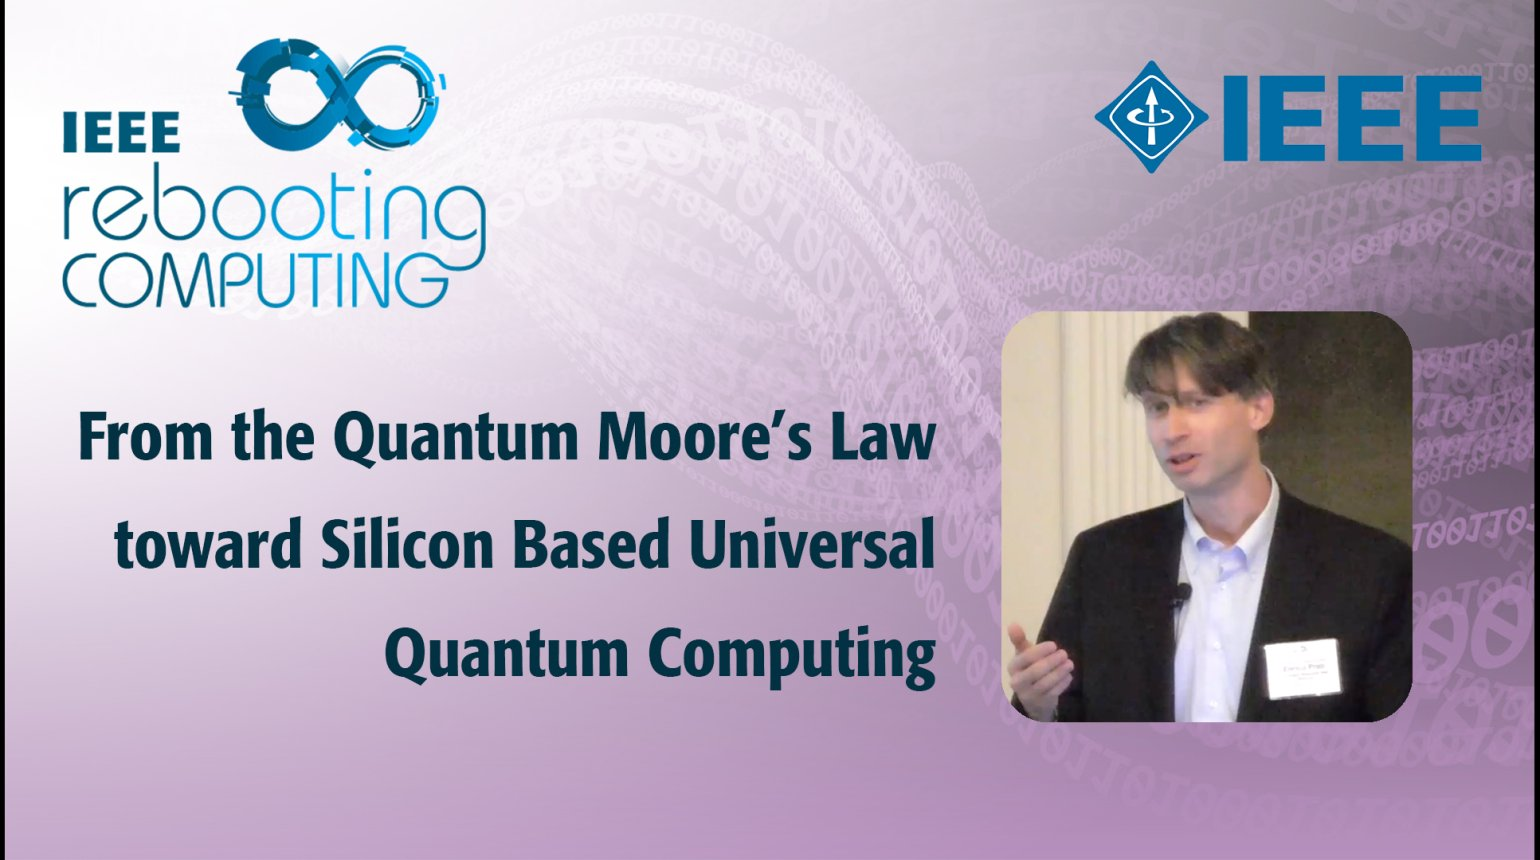 From the Quantum Moore's Law toward Silicon Based Universal Quantum Computing - IEEE Rebooting Computing 2017